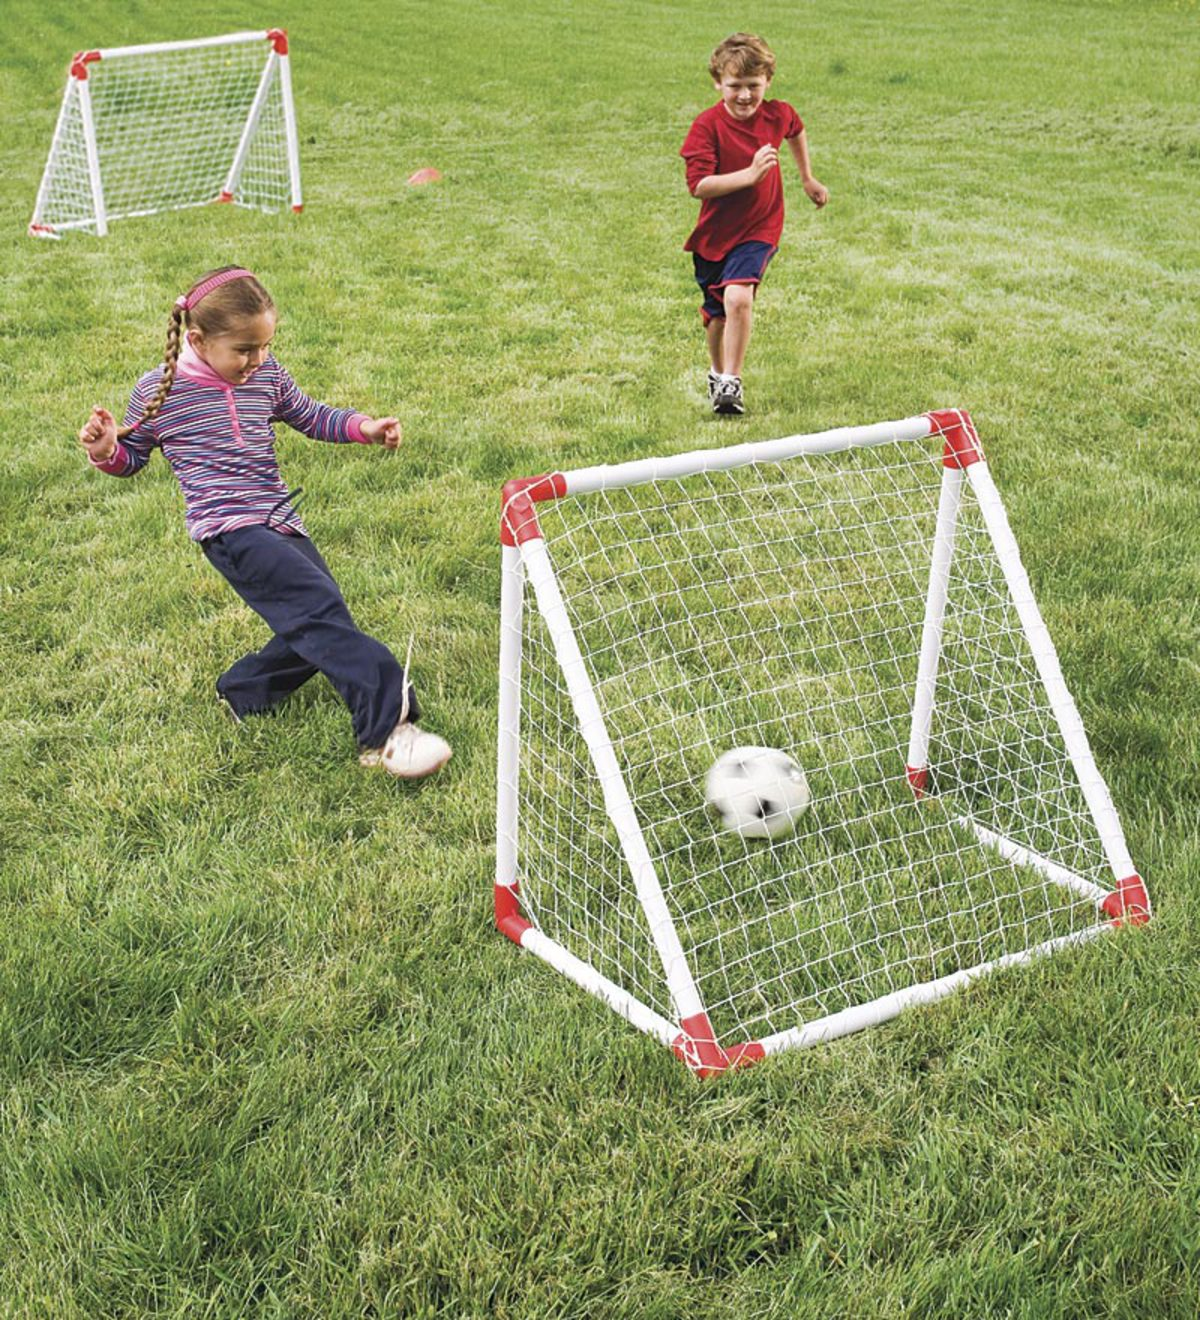 Junior Soccer Goal Set with High-Impact Vinyl Nets